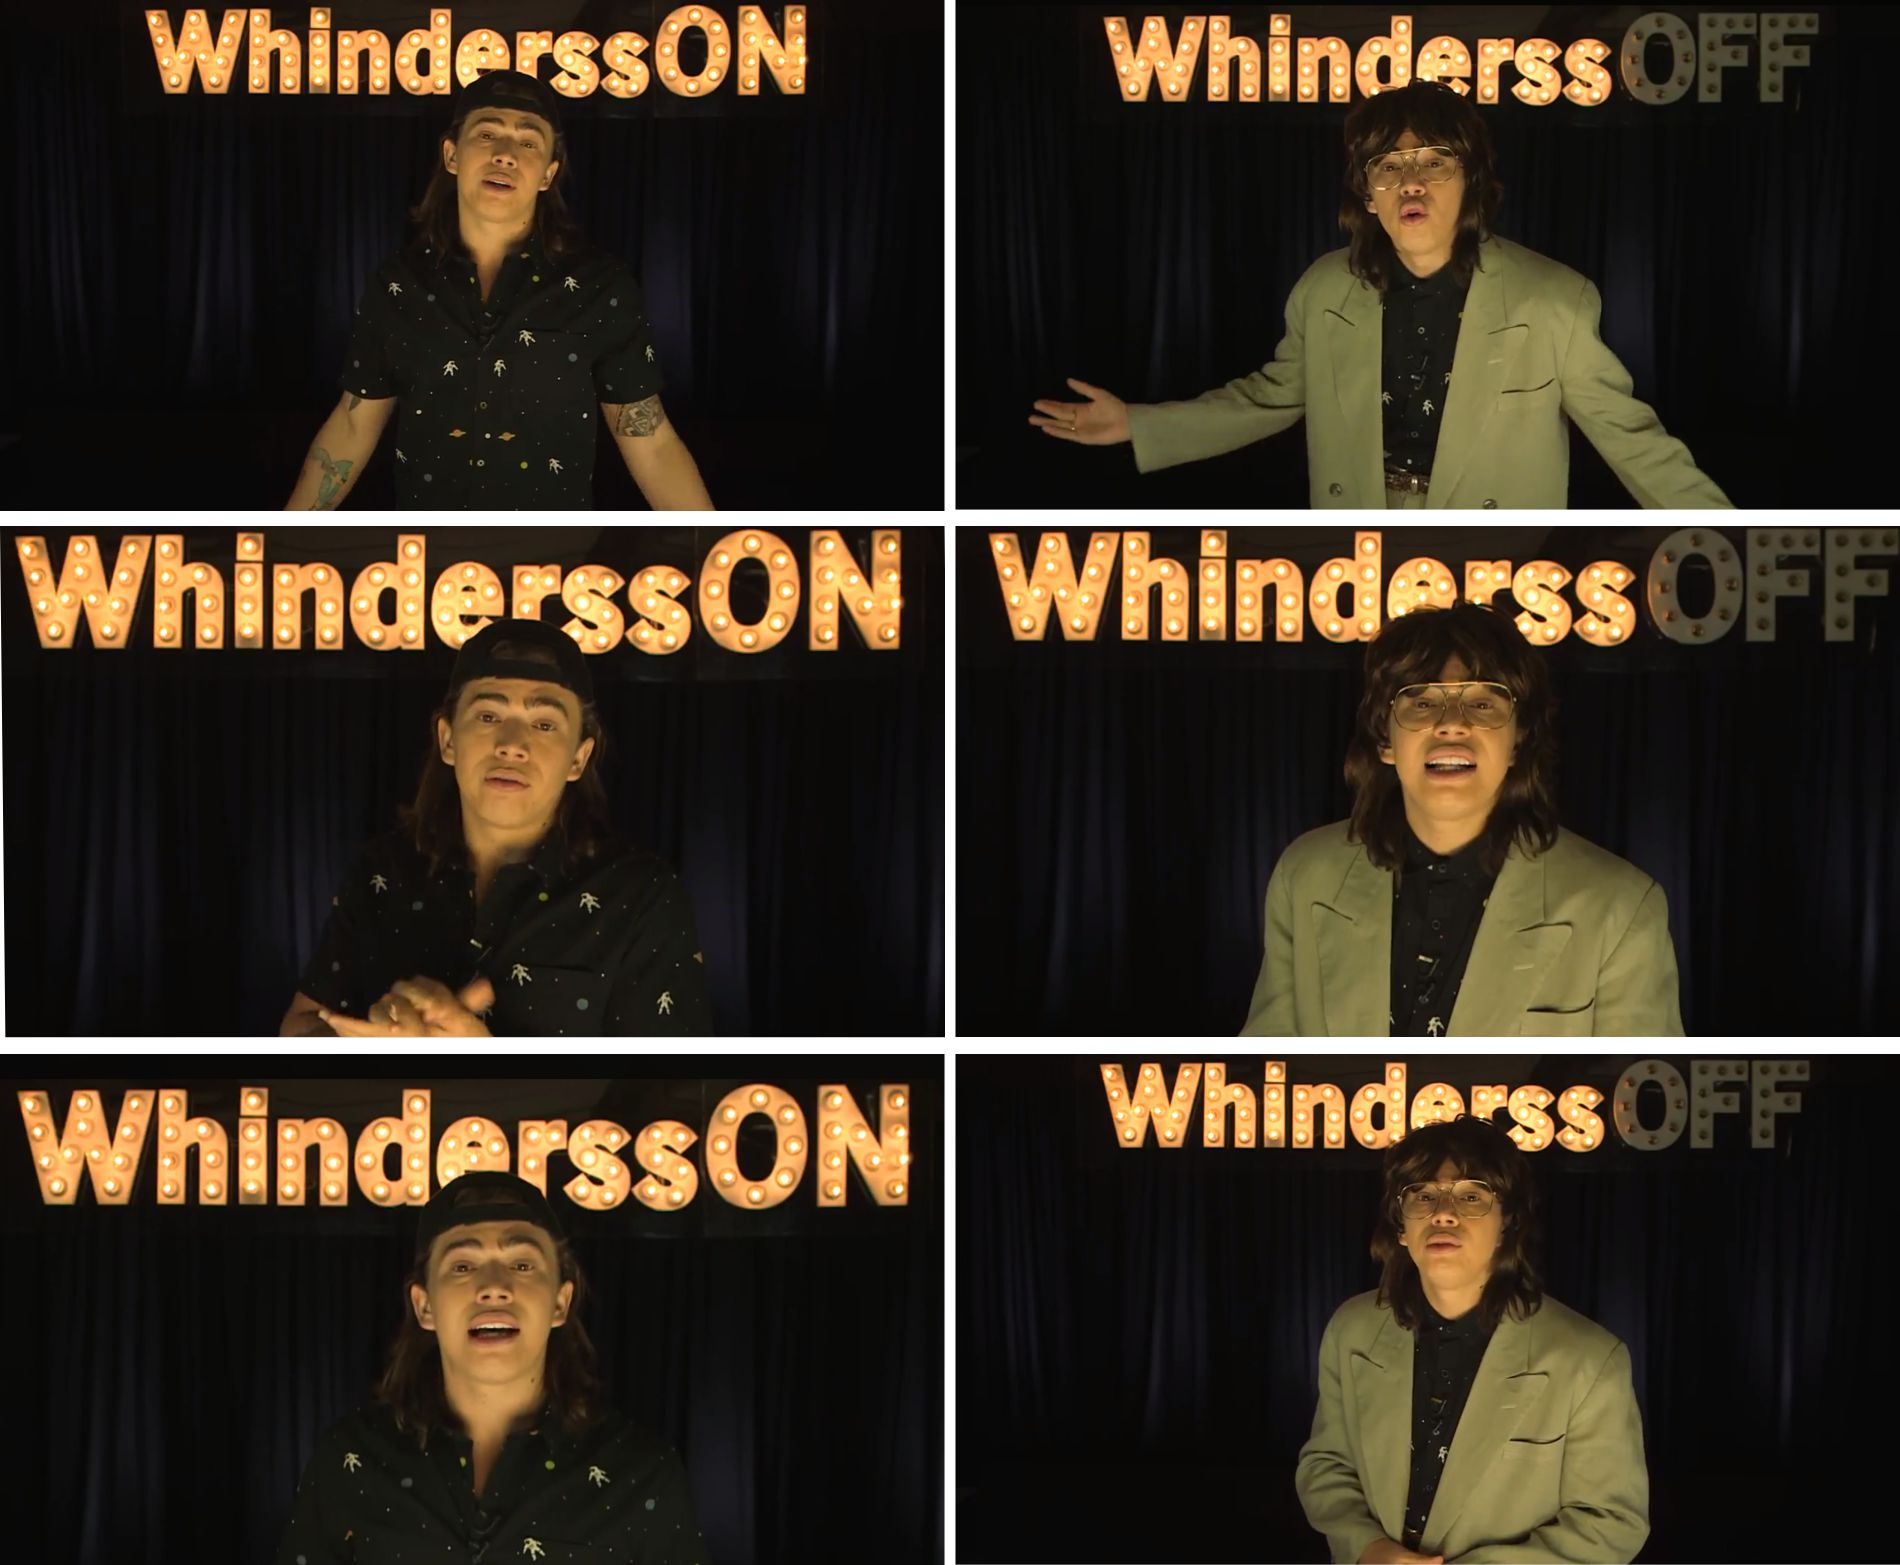 Whindersson - 5